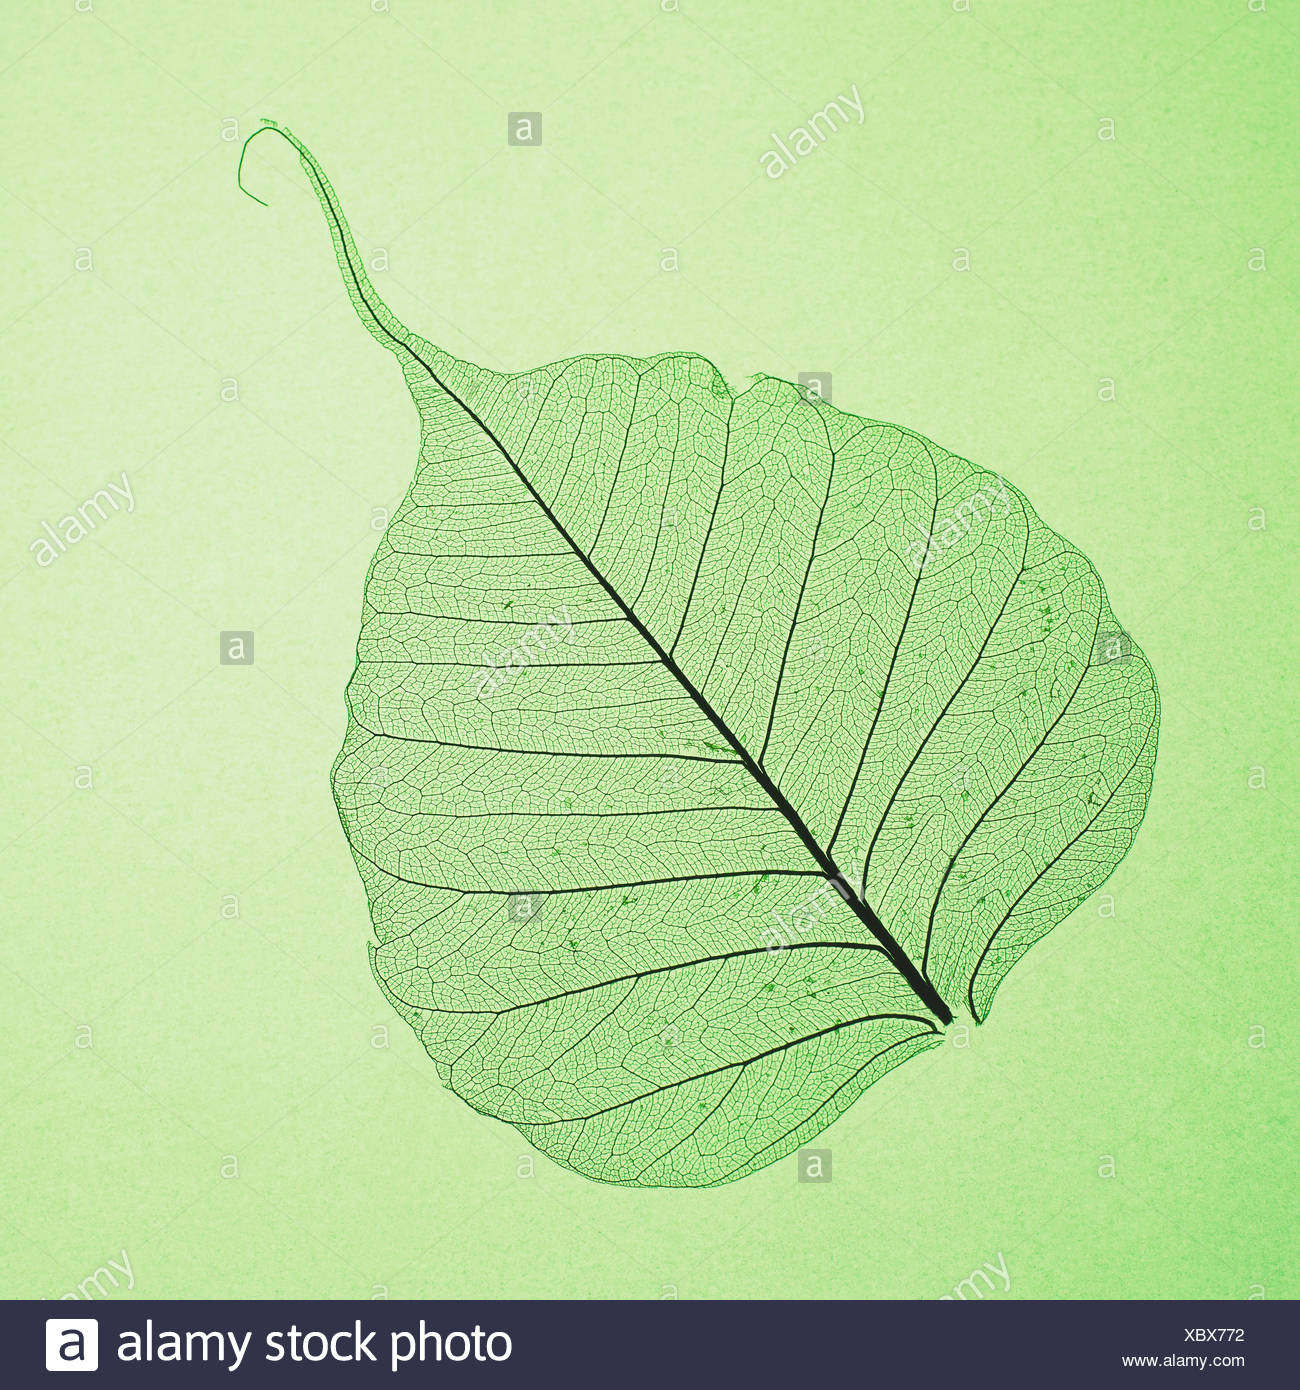 Feuille Photo Stock